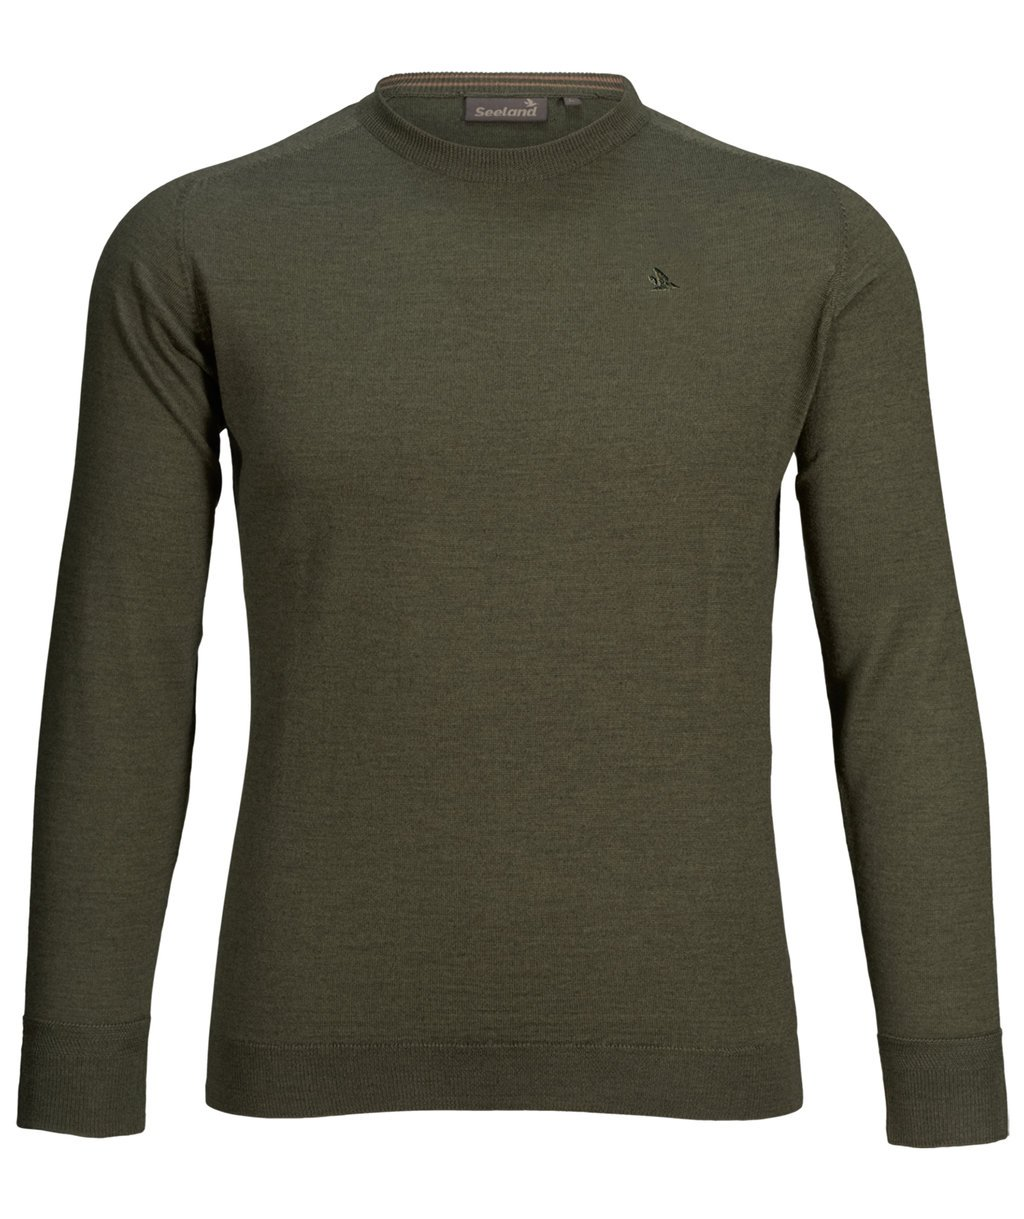 Seeland Woodcock pullover, Classic green